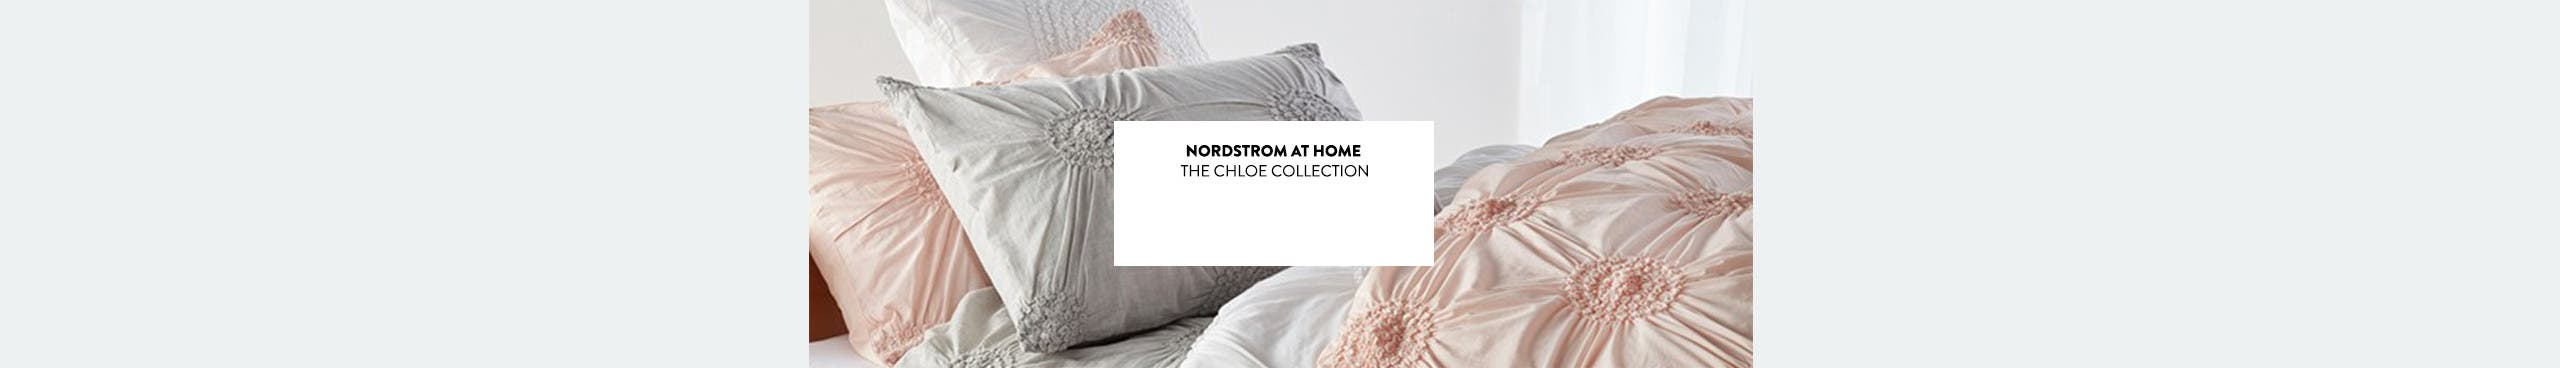 The Nordstrom at home Chloe bedding collection.